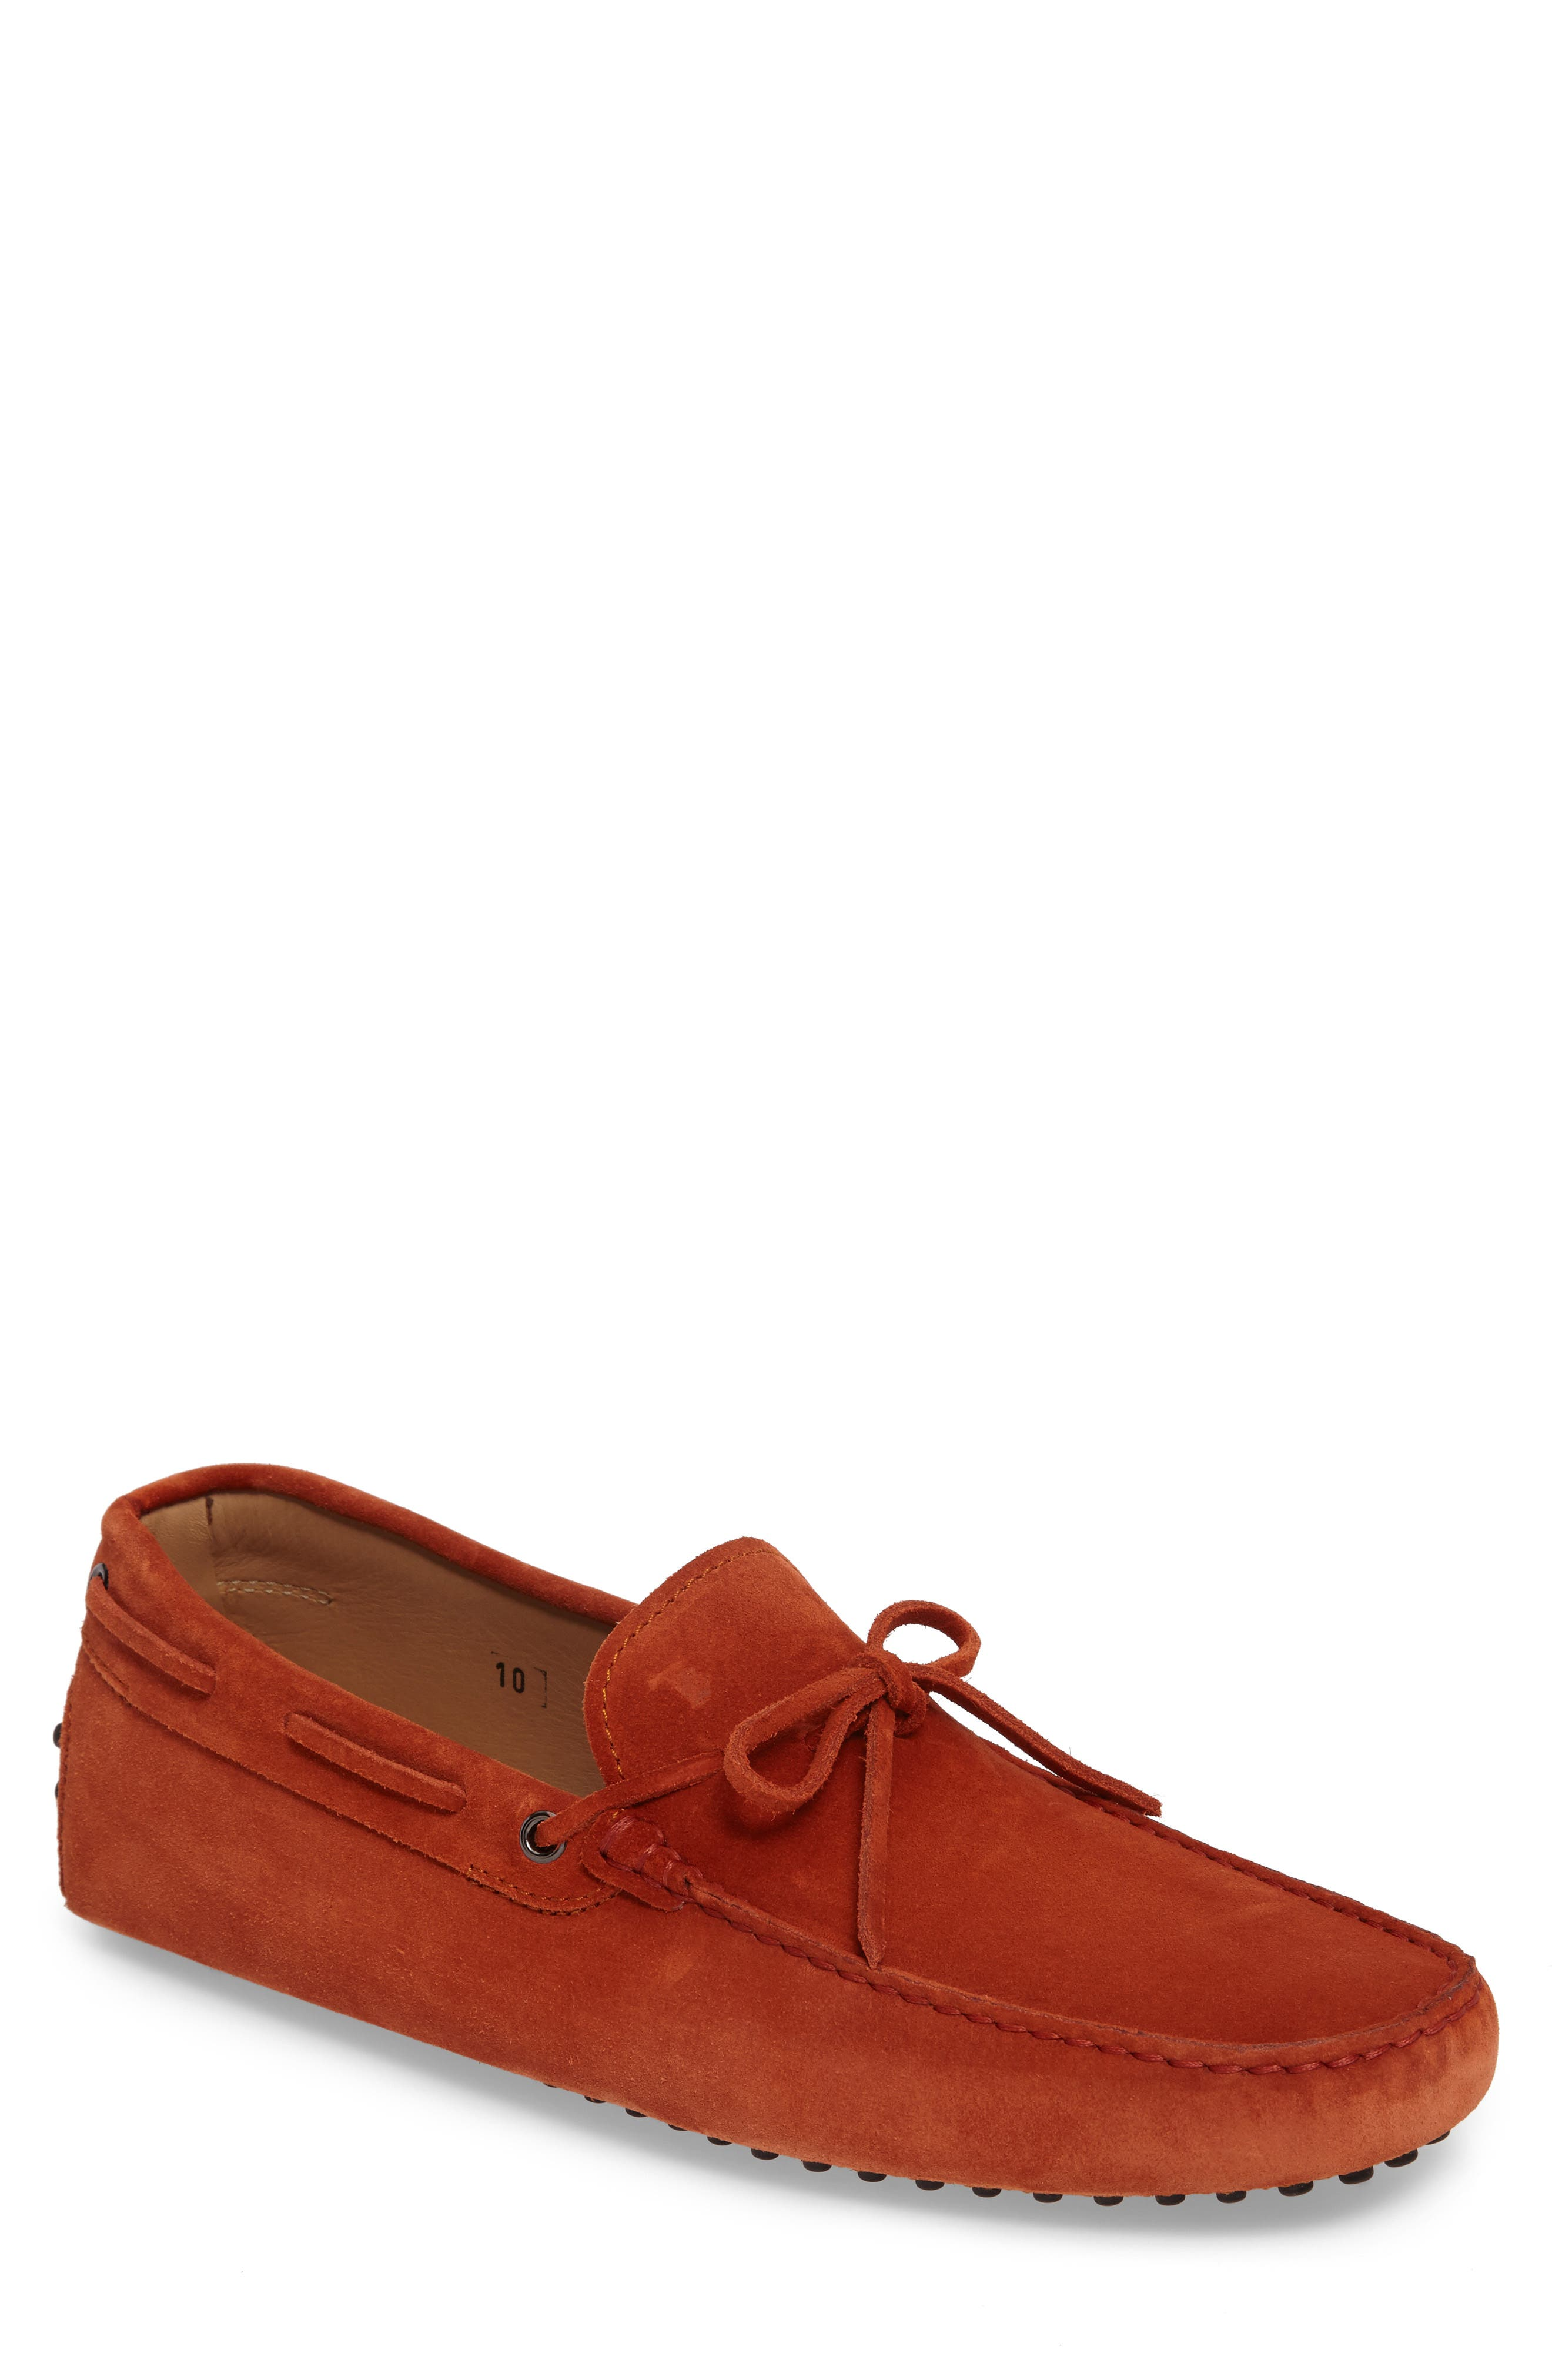 TODS Gommini Tie Front Driving Moccasin